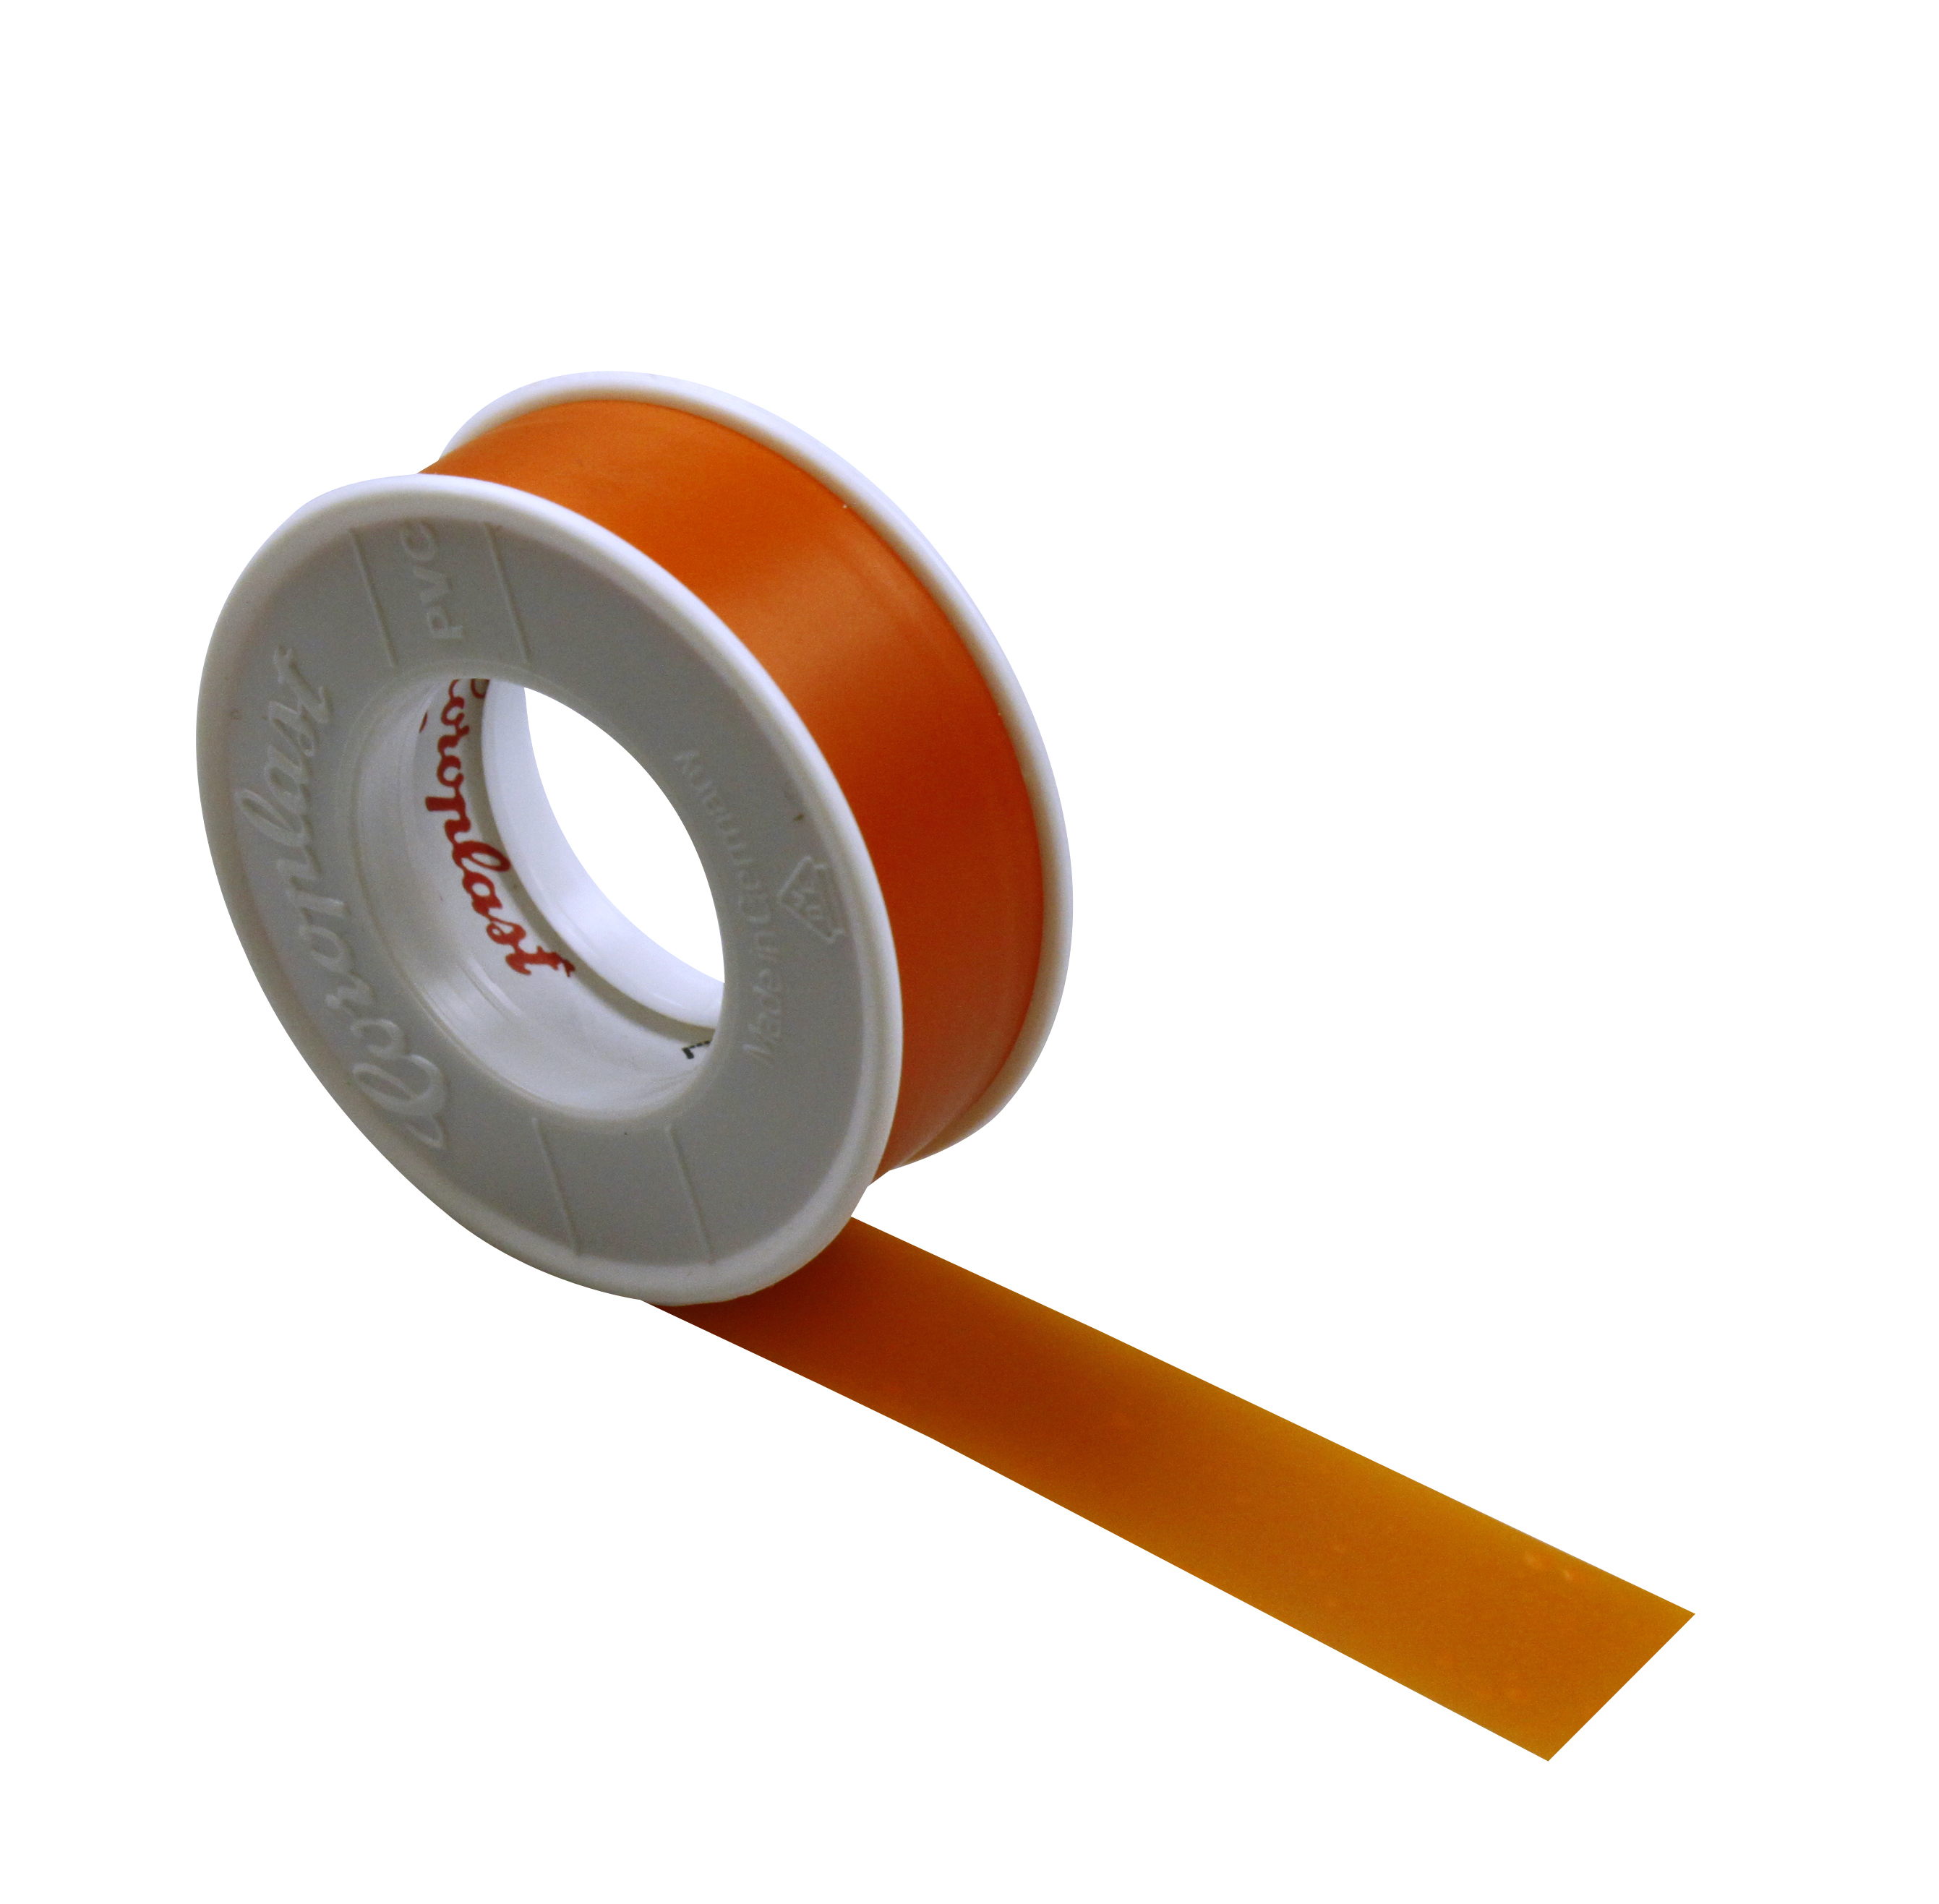 1 Stk Isolierband orange 15mm x 10m-Coroplast GI98516902